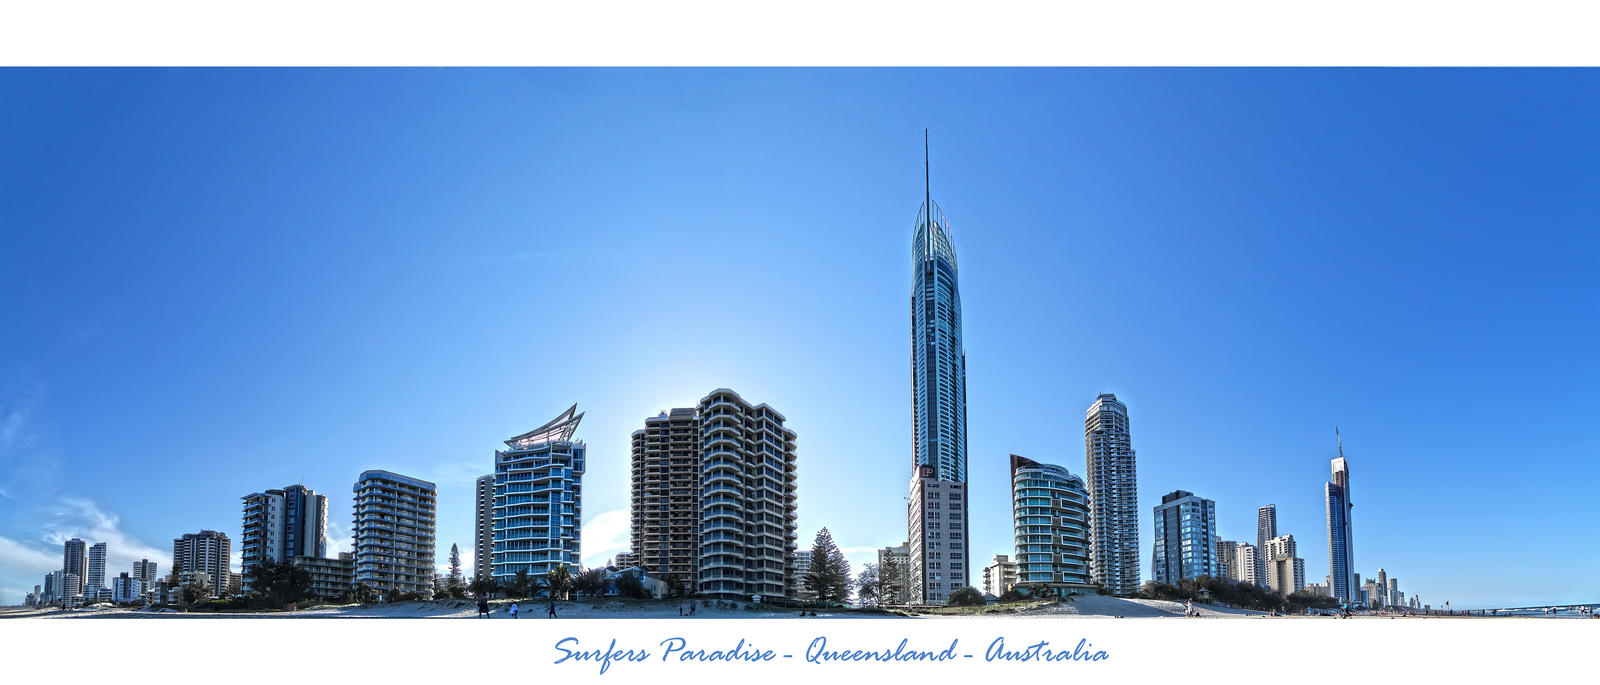 Paradise Word Tumblr Surfers paradise by donnymurph